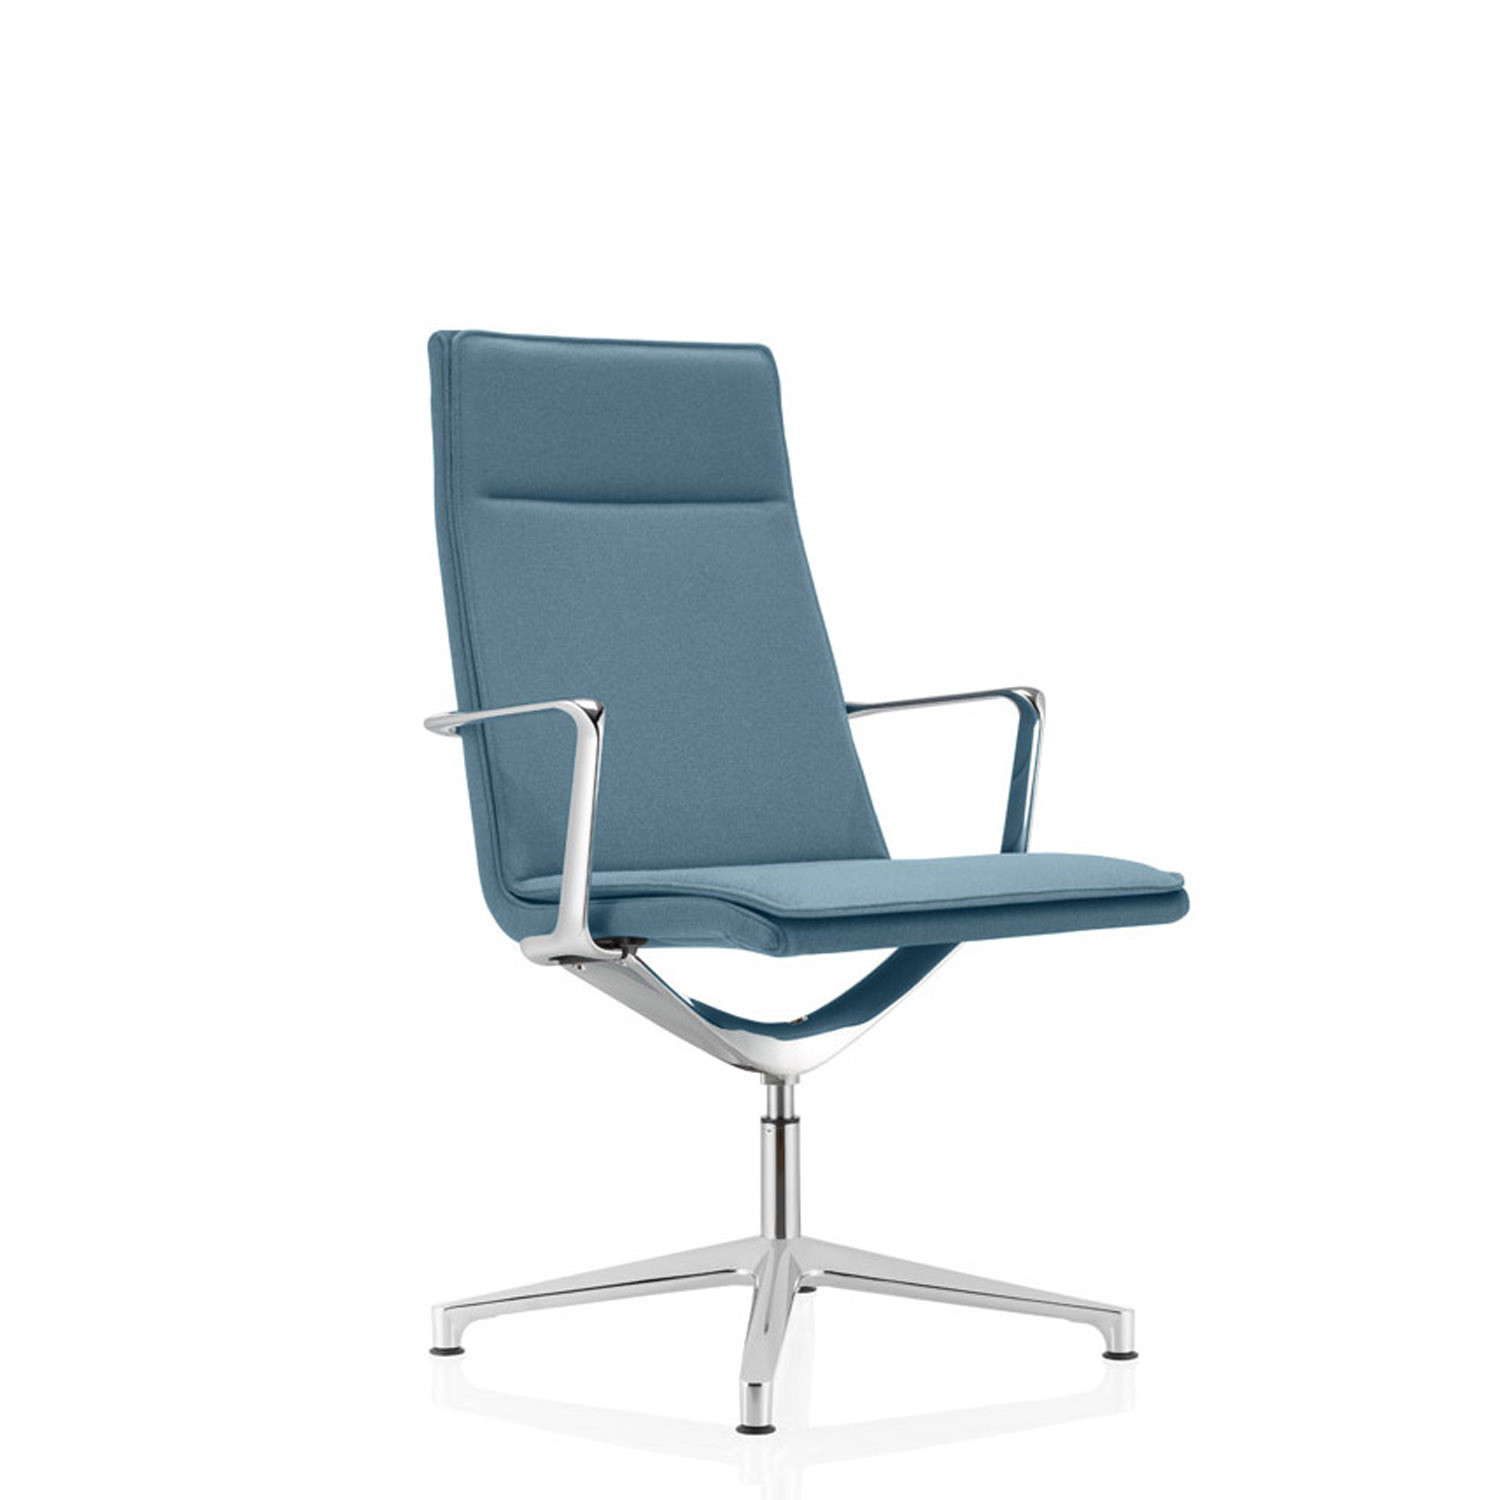 Valea Medium Back Chair